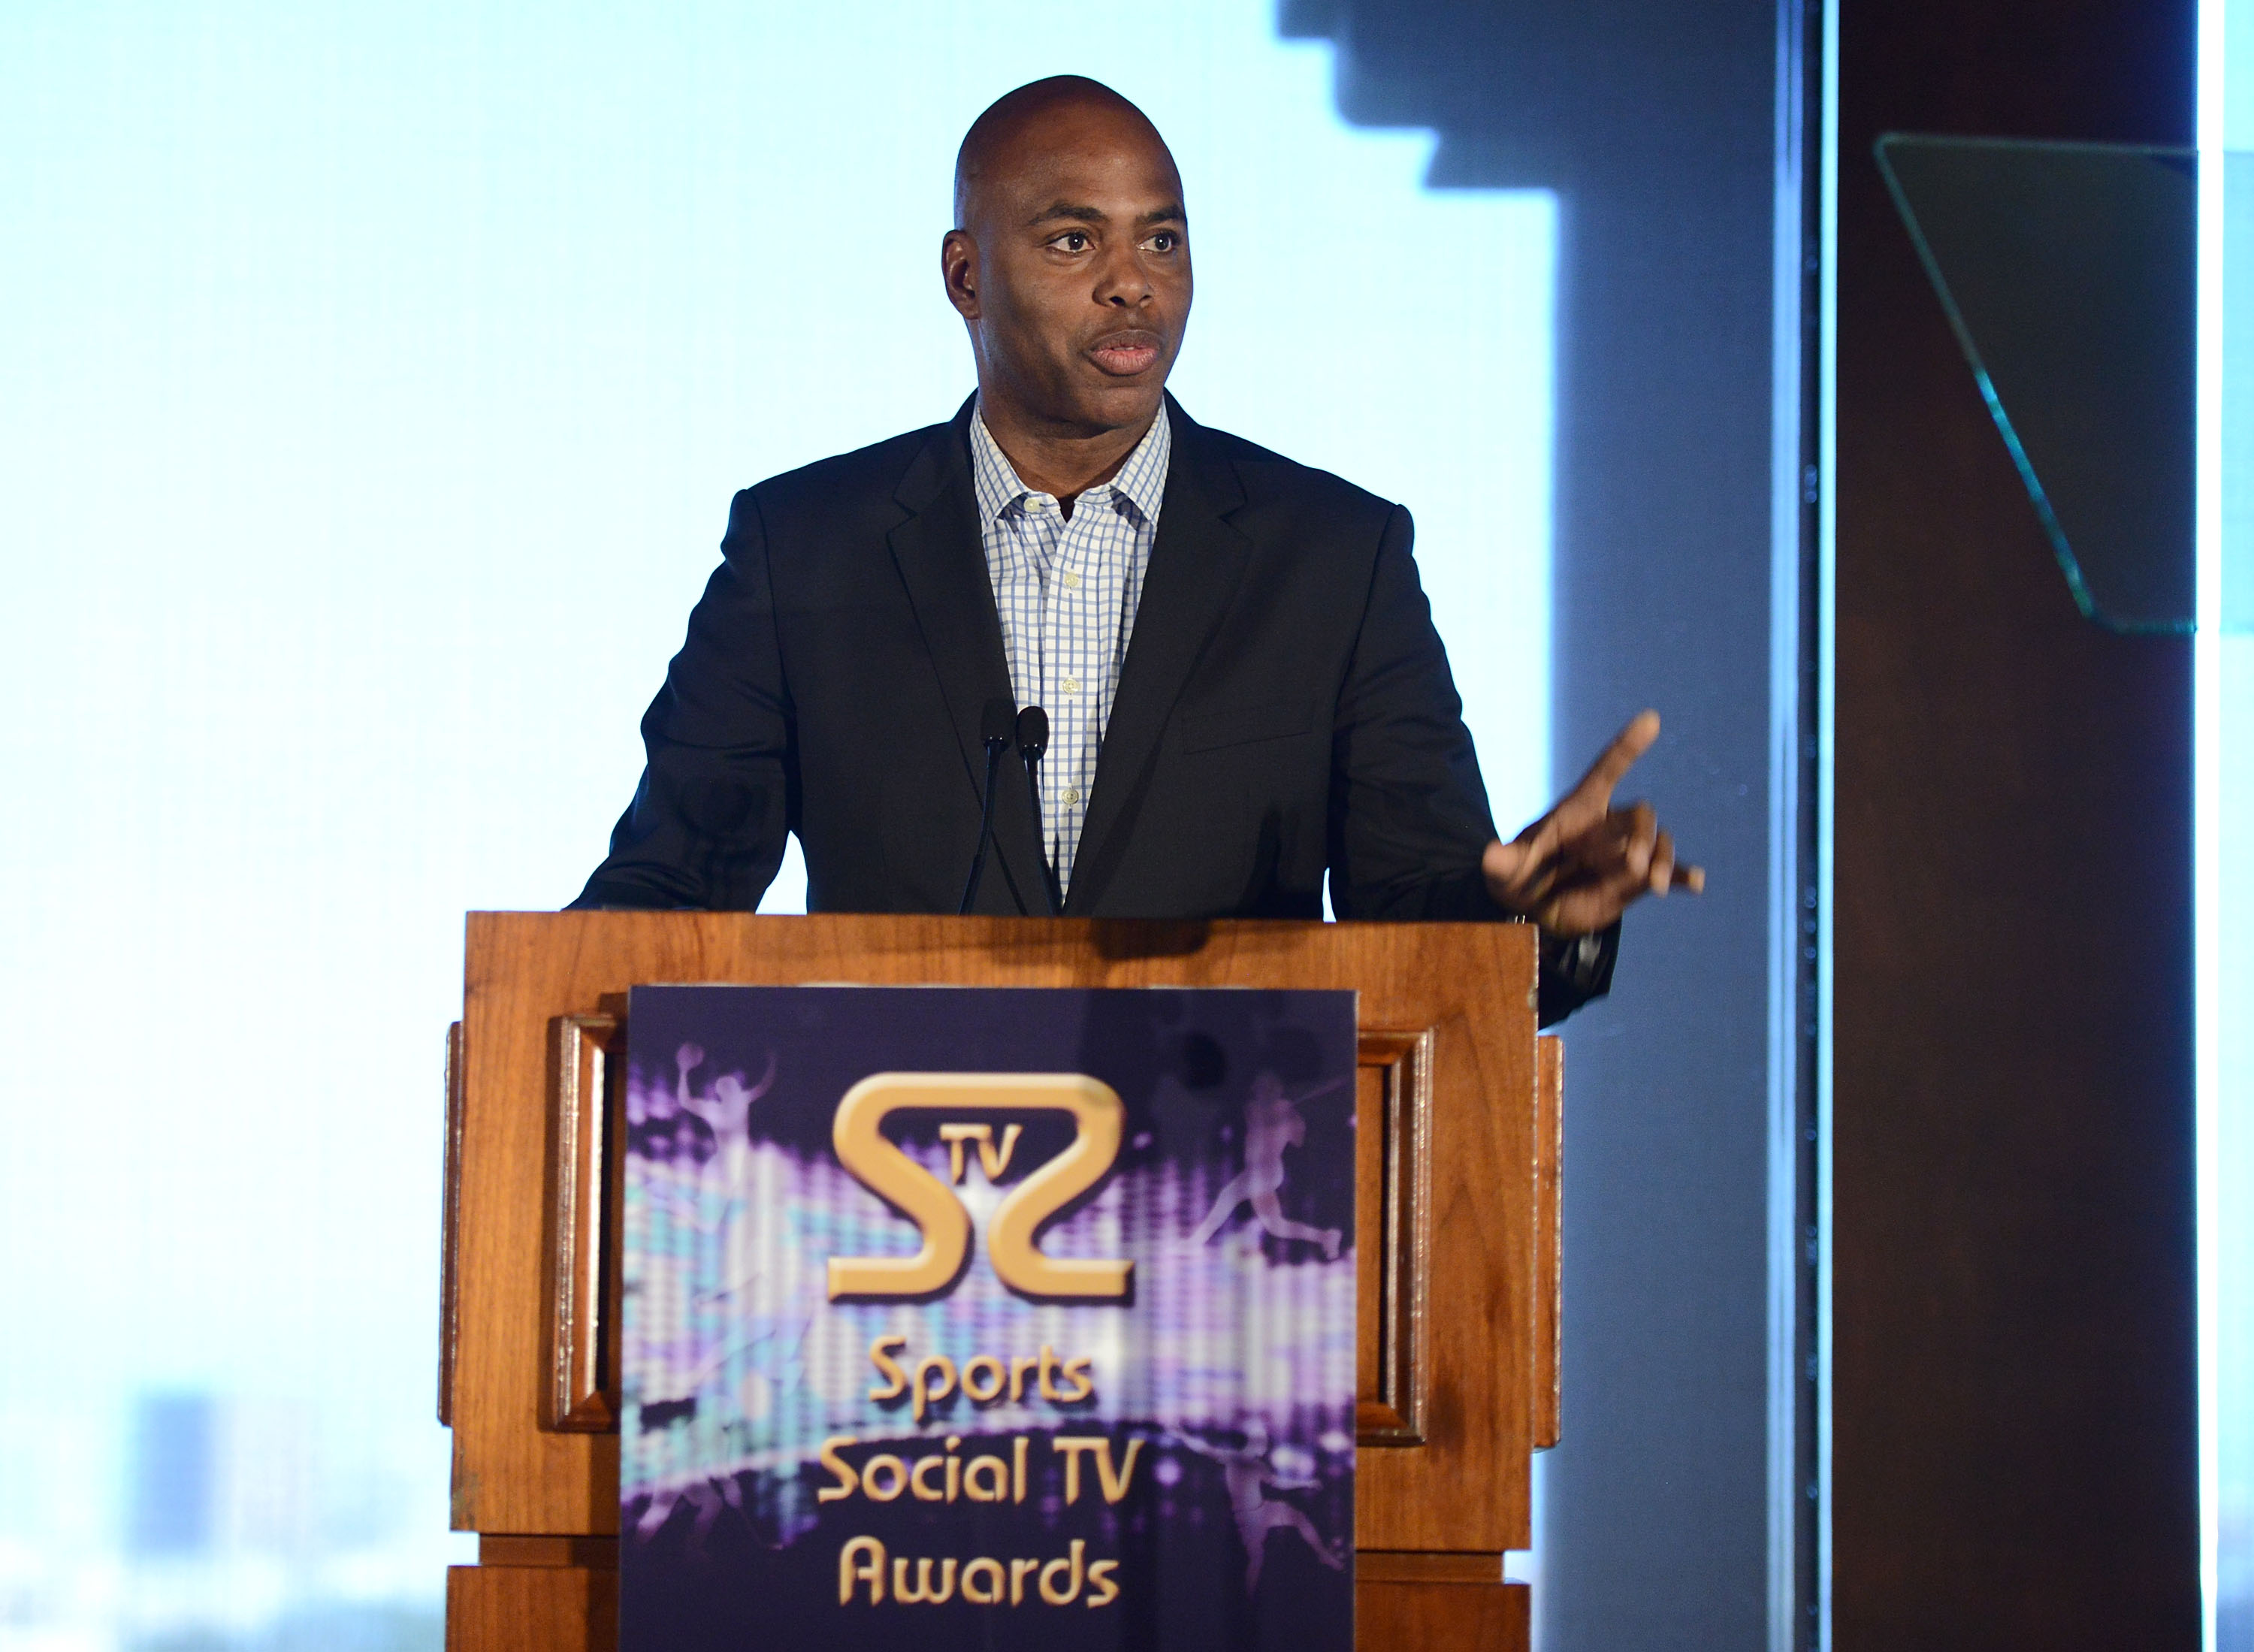 The Sports Social TV Summit and Awards